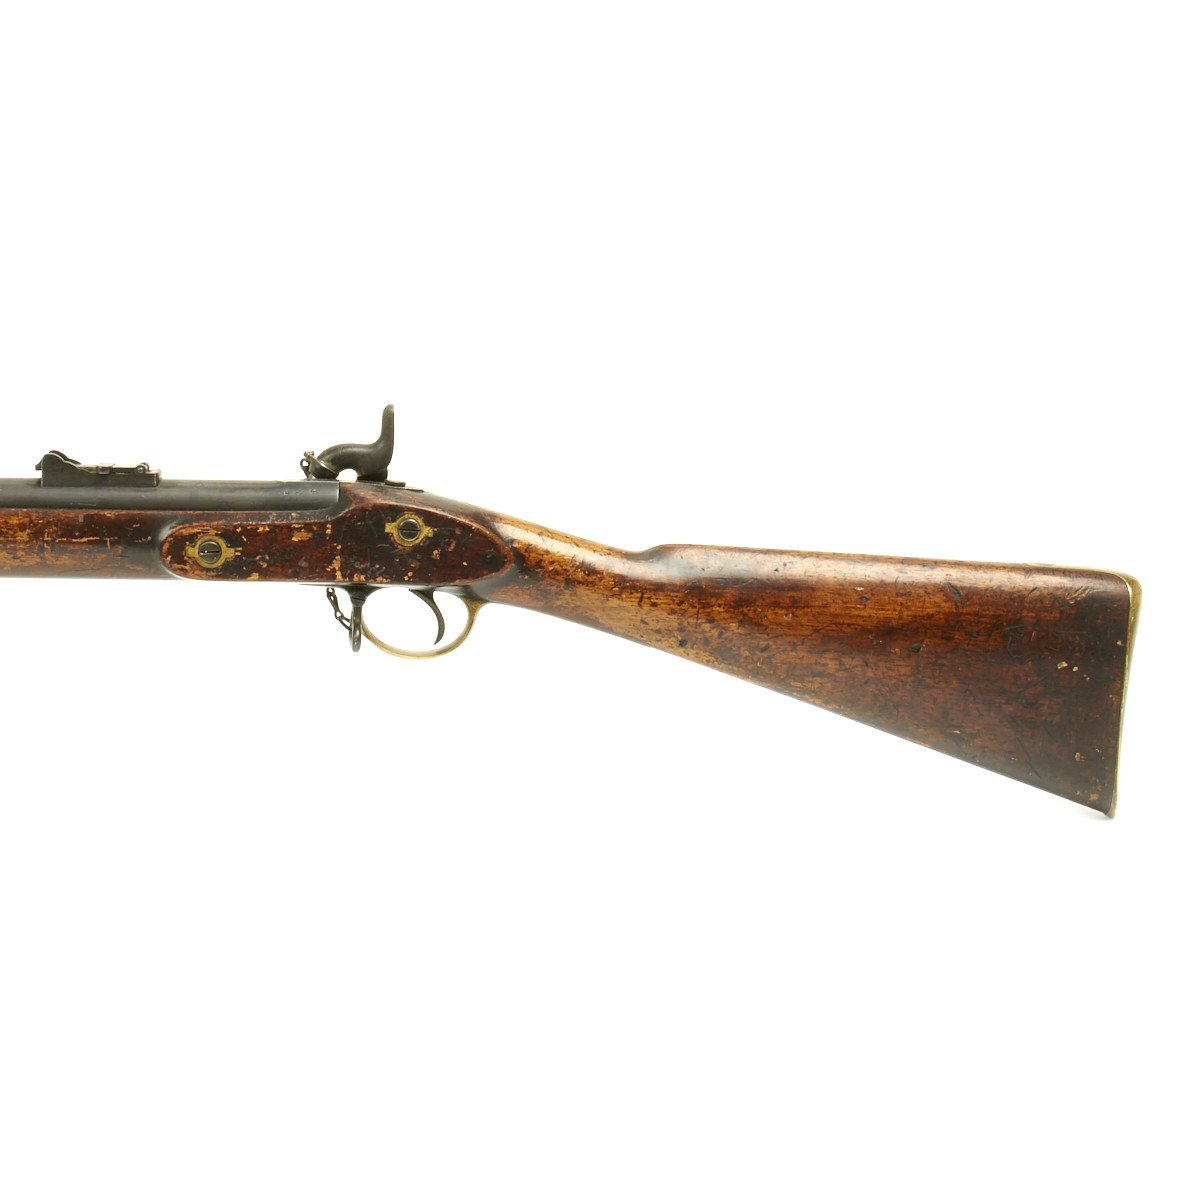 Original British P-1853 Enfield Rifle Musket Produced in